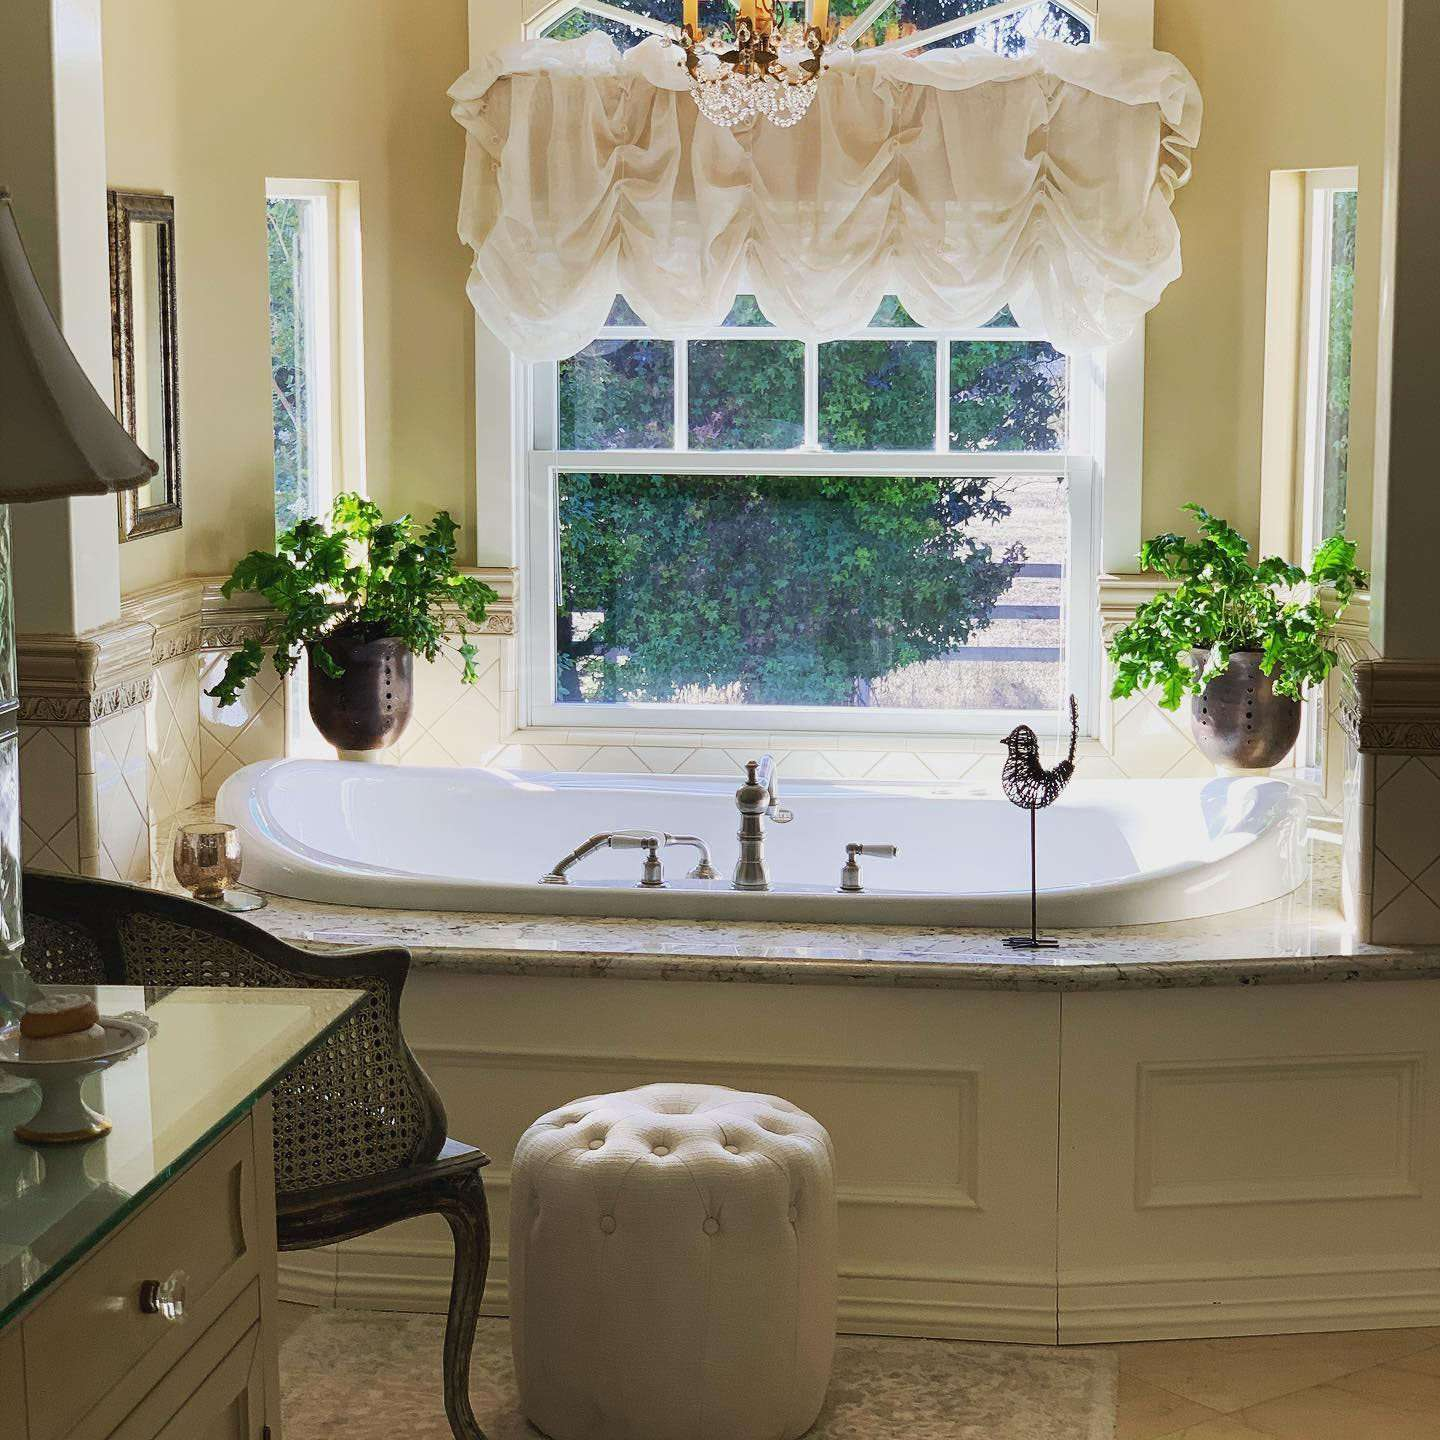 Master Bath of the Bees Knees Country House